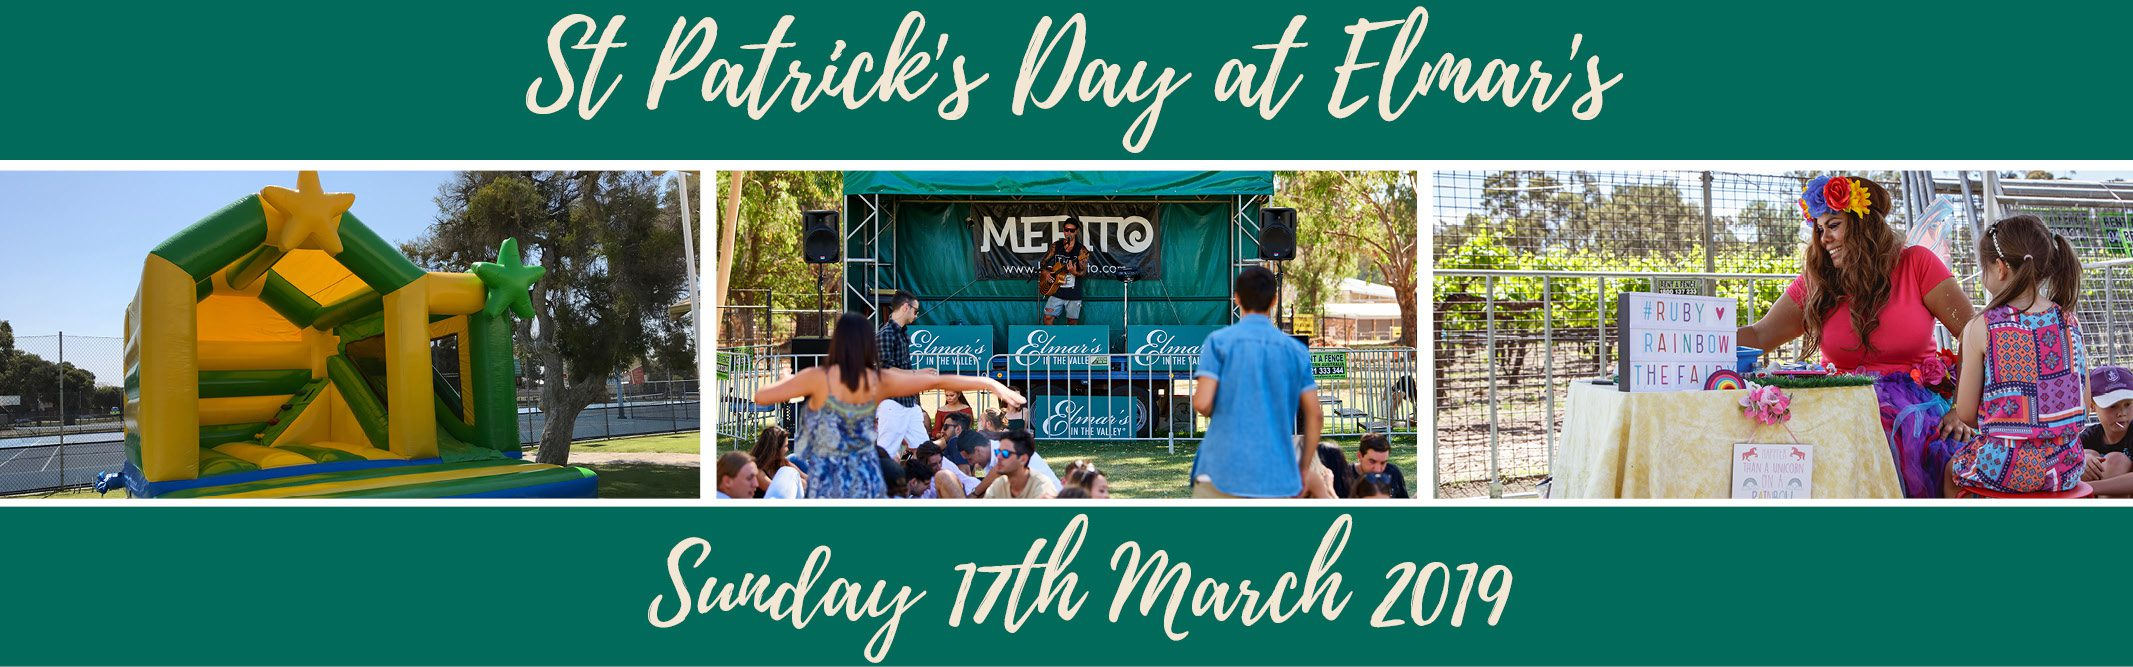 St Patrick's Day at Elmar's in the Valley. Sunday 17th March 2019. Banner Image